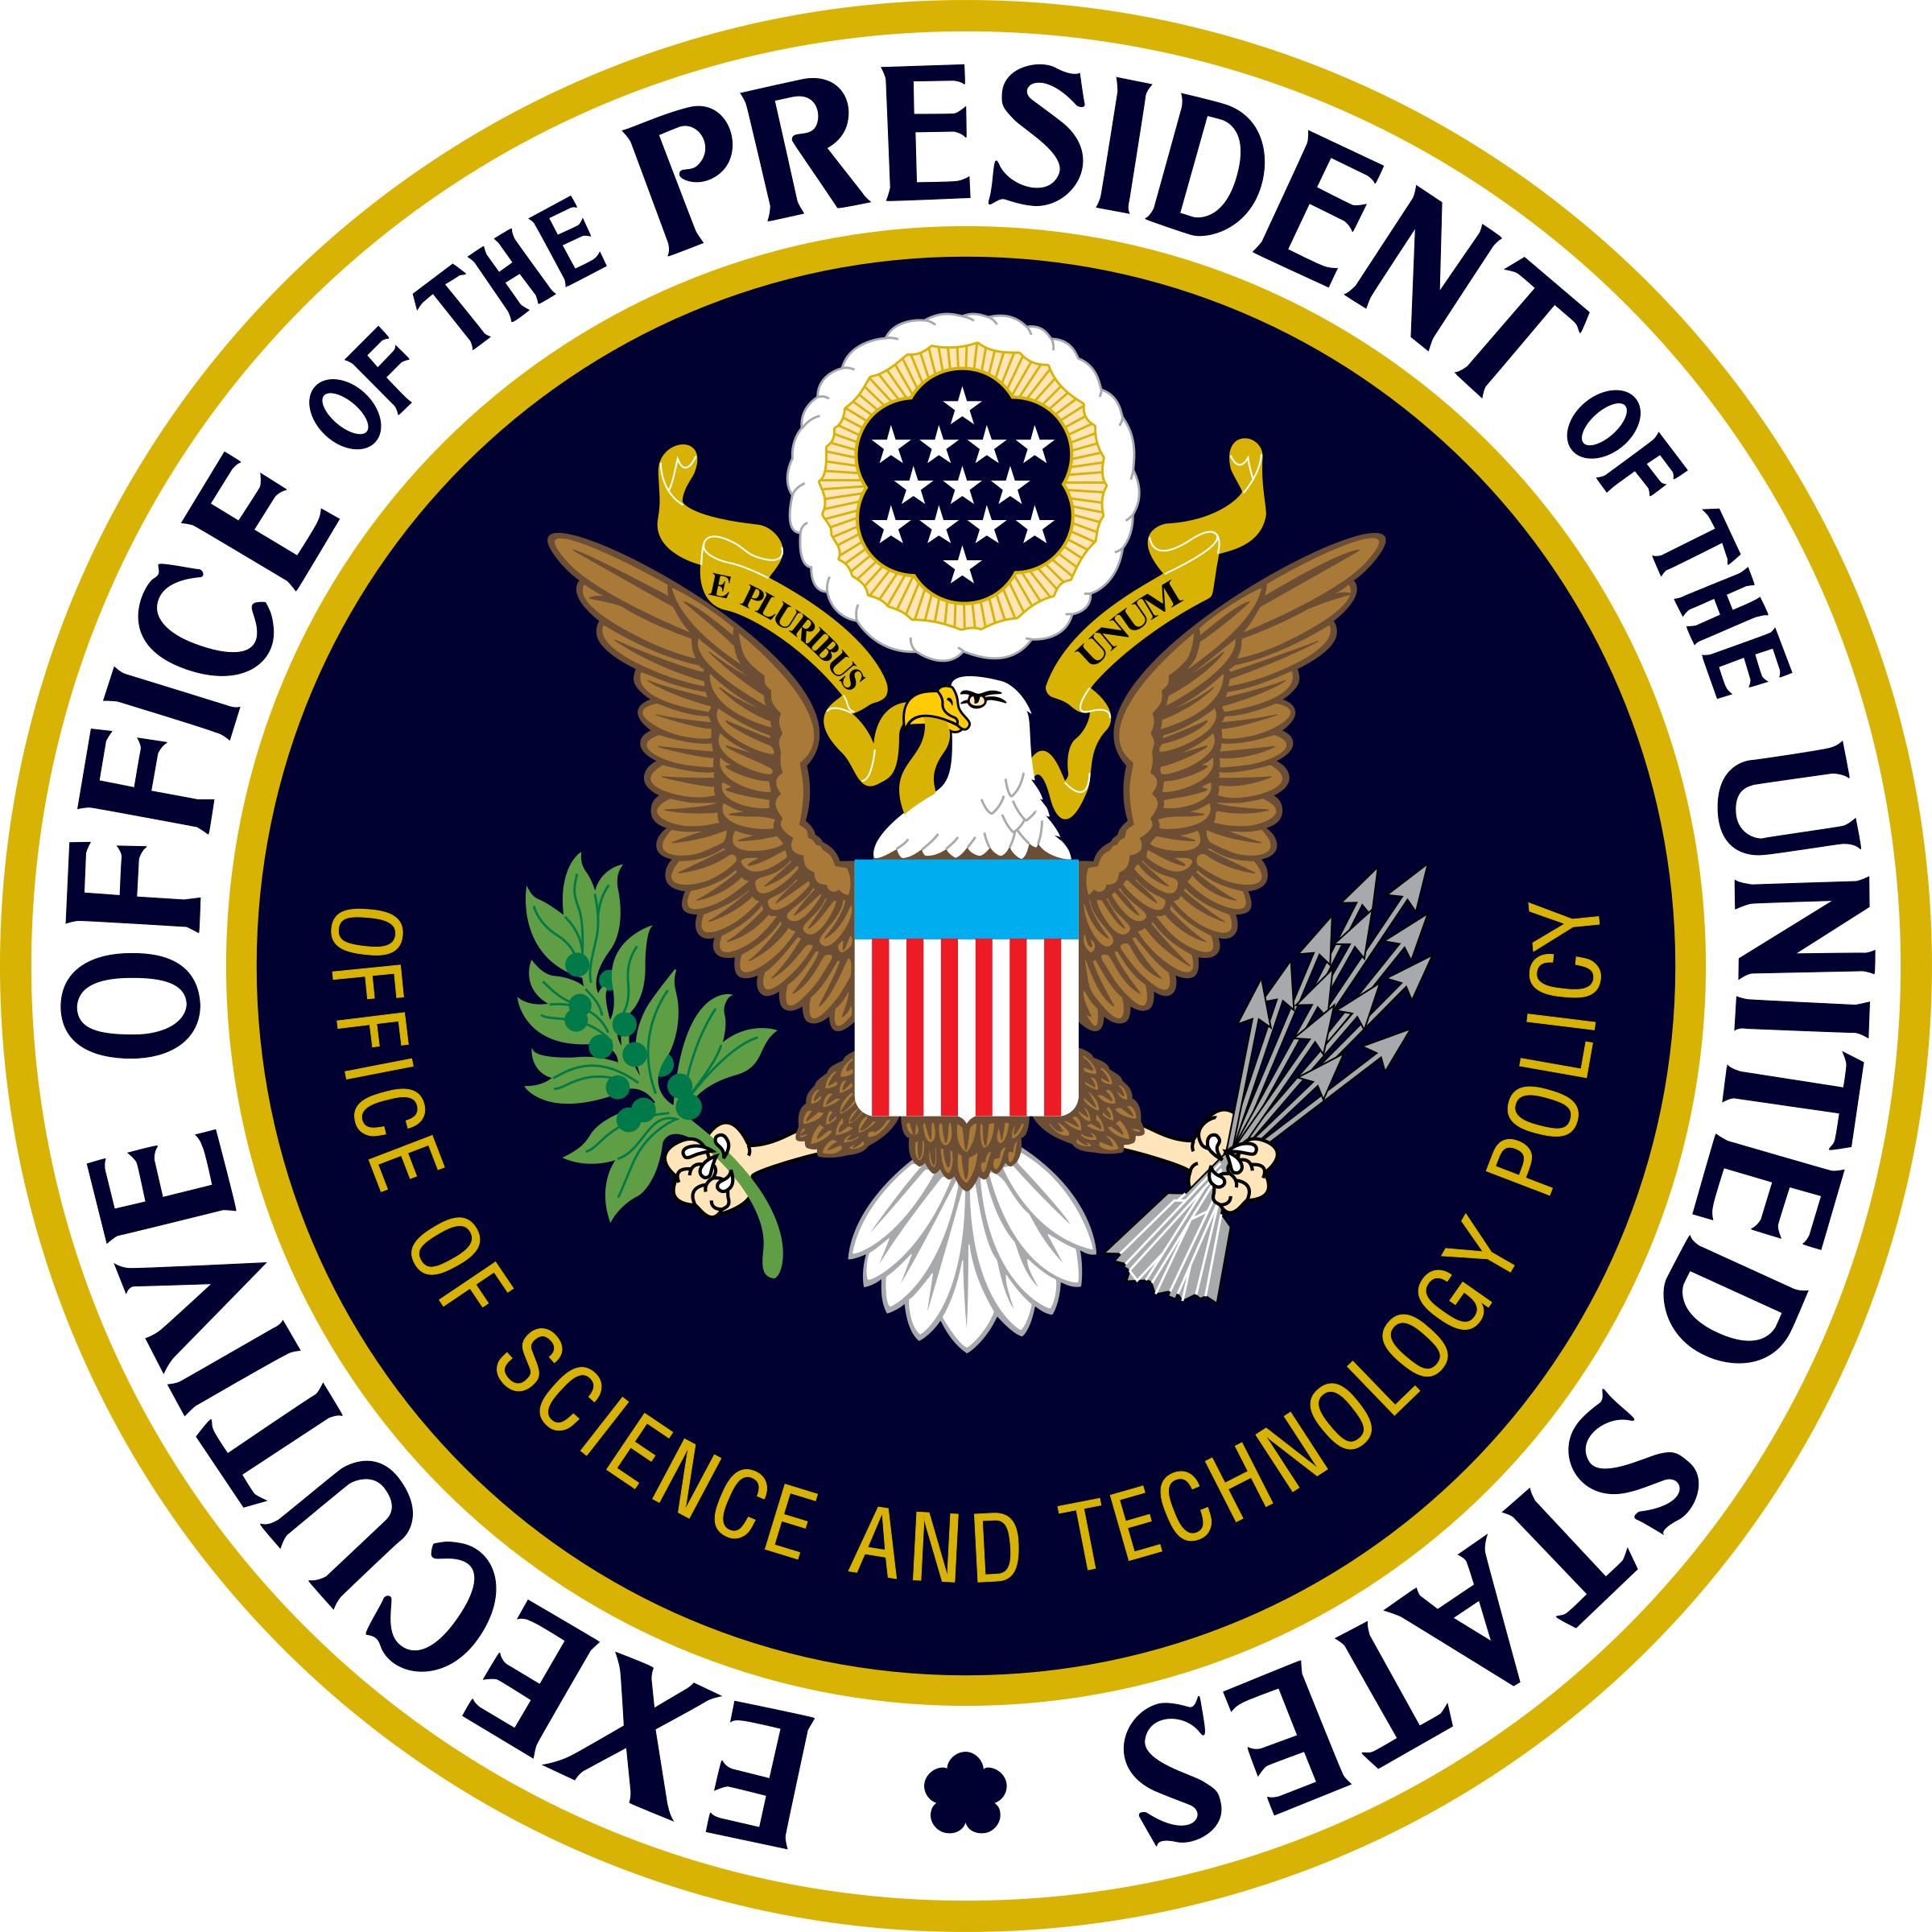 EOP executive office of the president seal logo